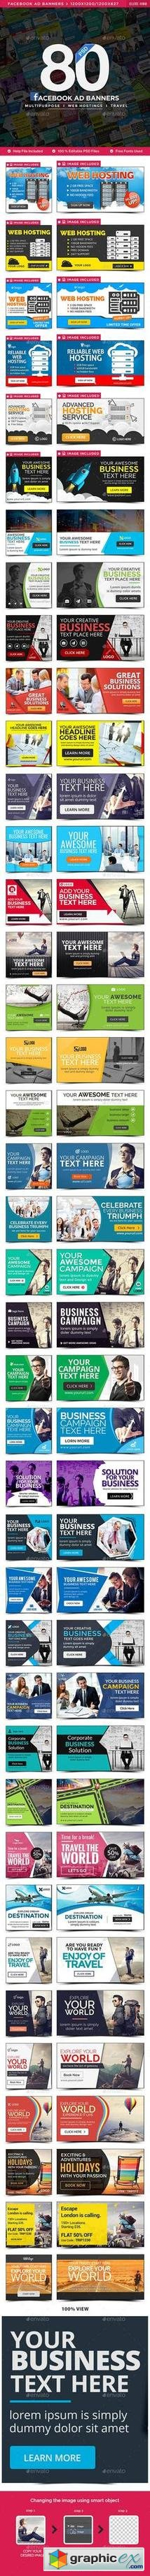 Facebook Ads - 40 Designs - 80 Banners